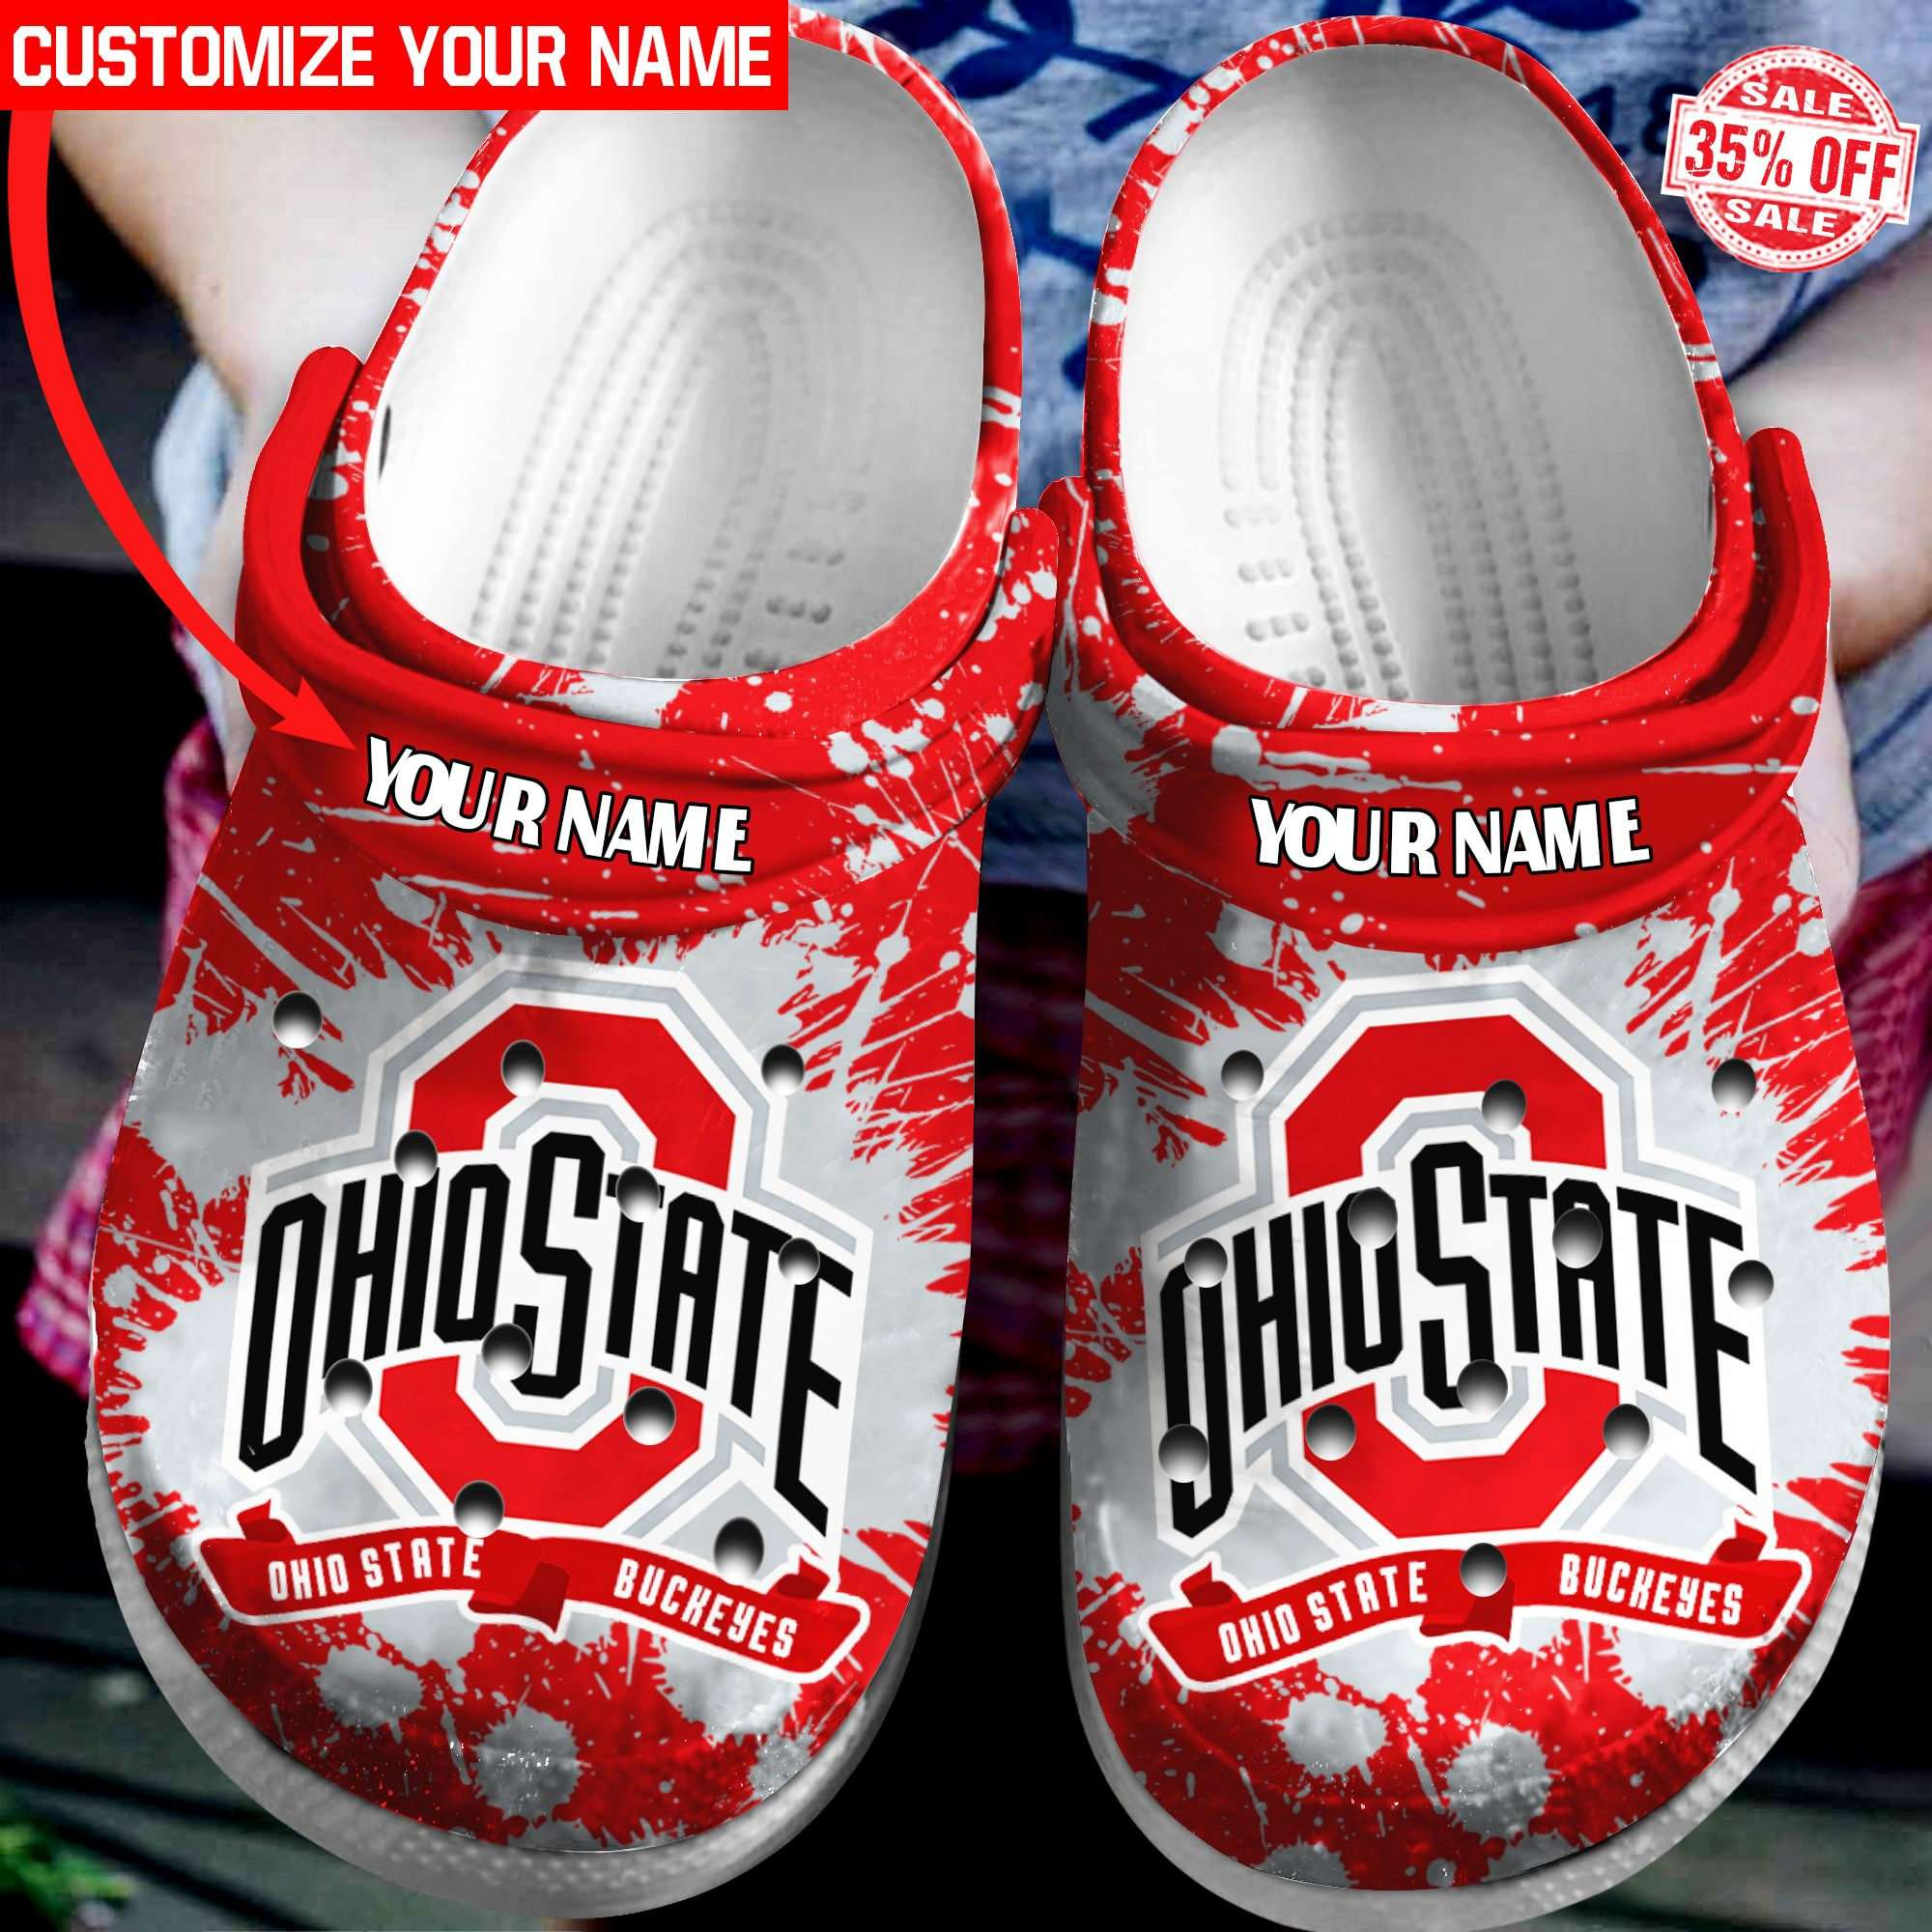 Ohio State Buckeyes Personalized Crocs Clog Shoes